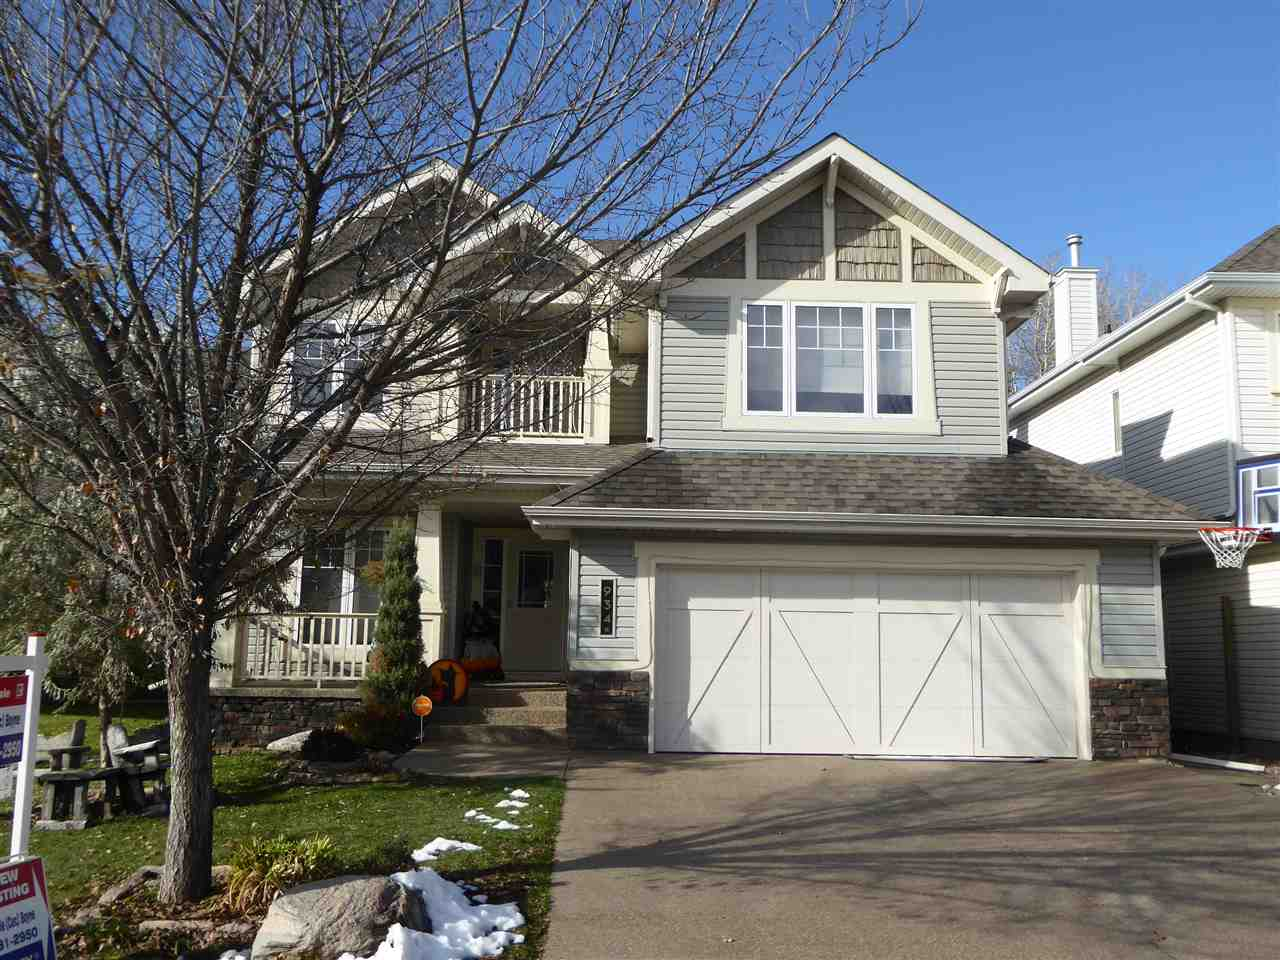 Main Photo: 934 HOPE WY NW in Edmonton: Zone 58 House for sale : MLS® # E4041259